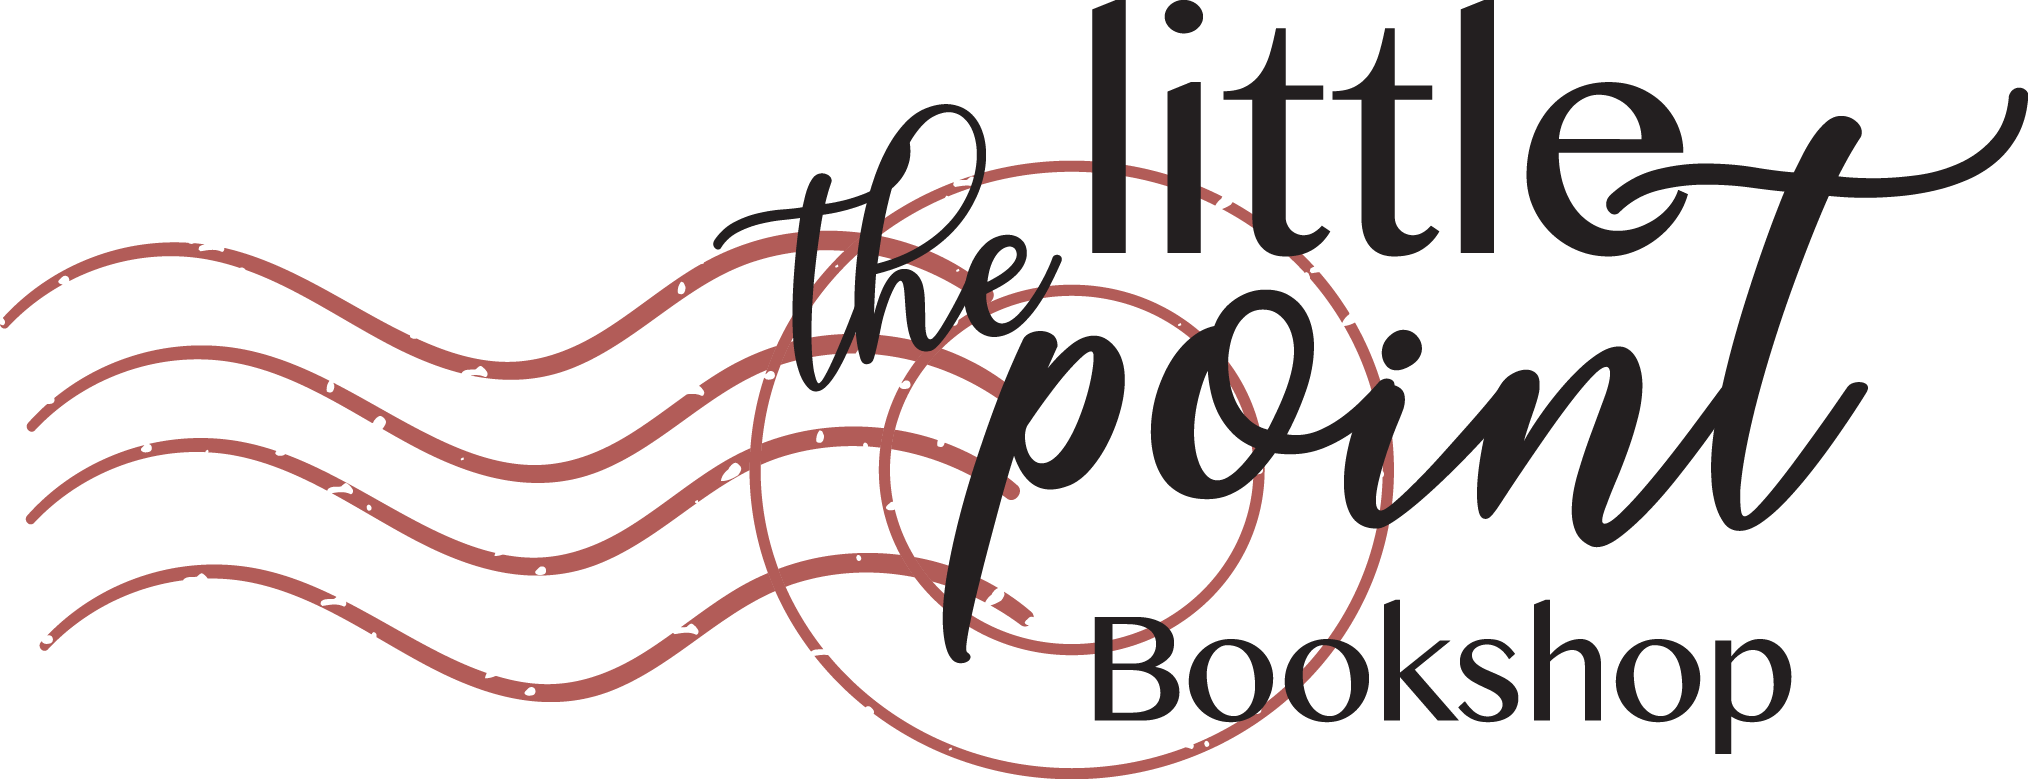 The Little Point Bookshop